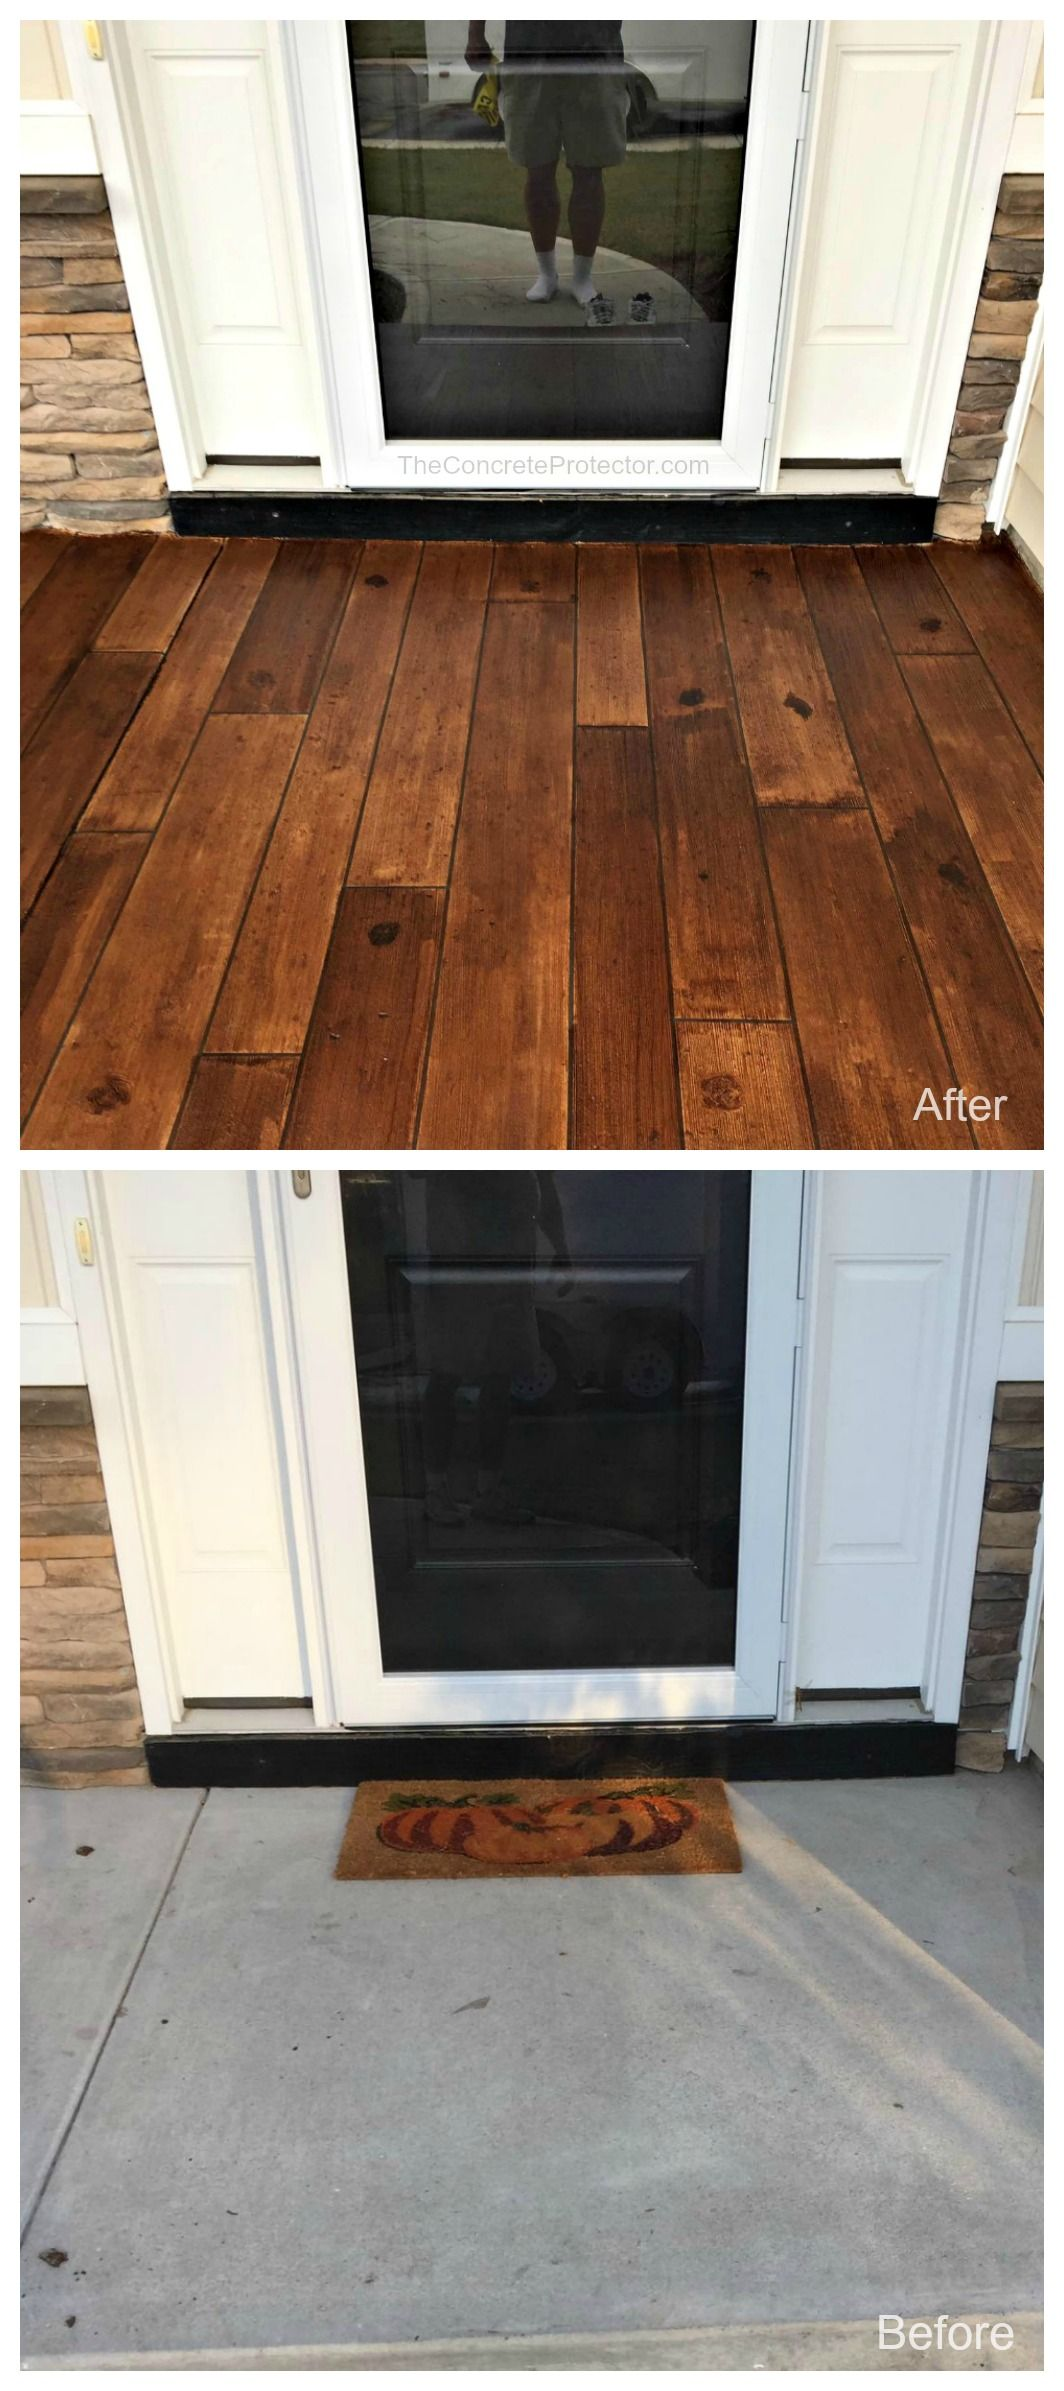 rustic concrete wood front porch makeover the concrete protector rustic concrete wood in. Black Bedroom Furniture Sets. Home Design Ideas